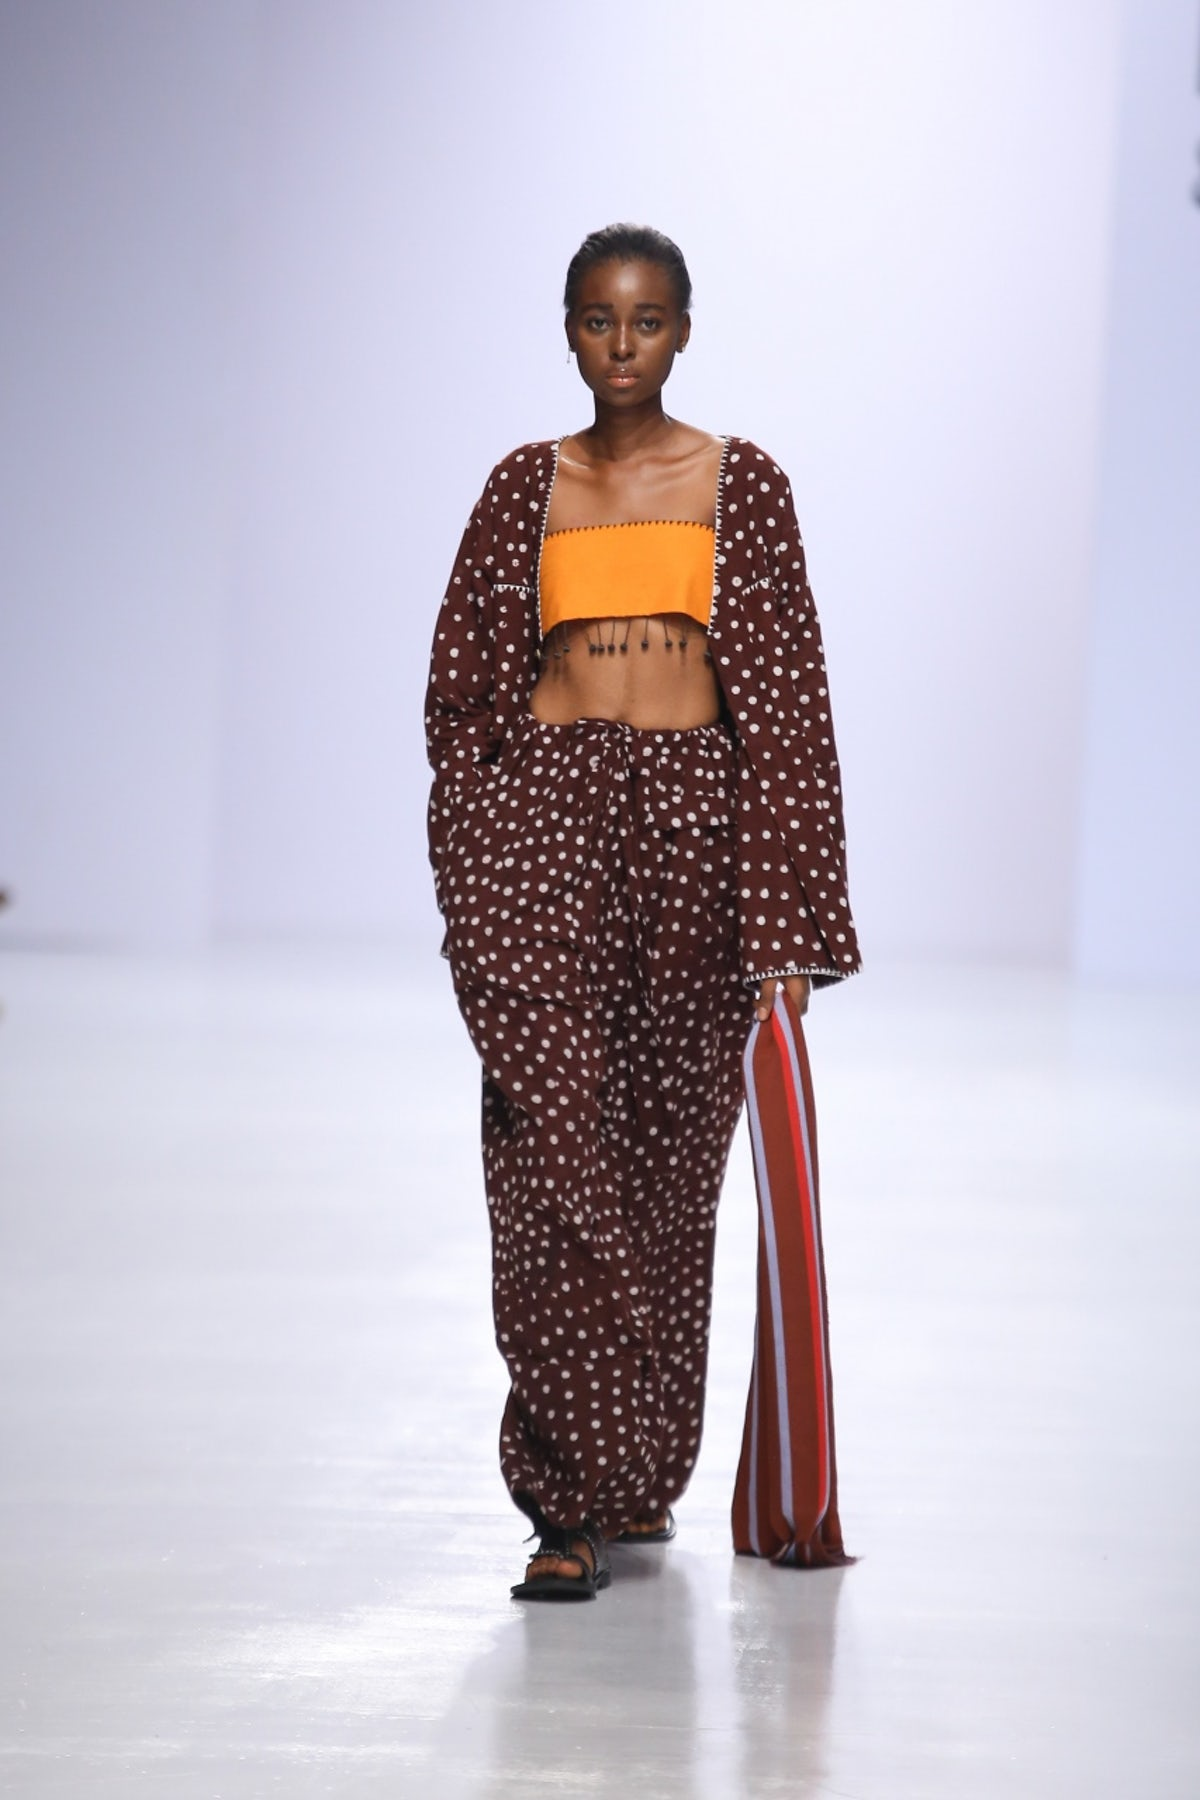 kenneth_ize_look_14_ready_to_wear_spring_2018 (1).jpeg